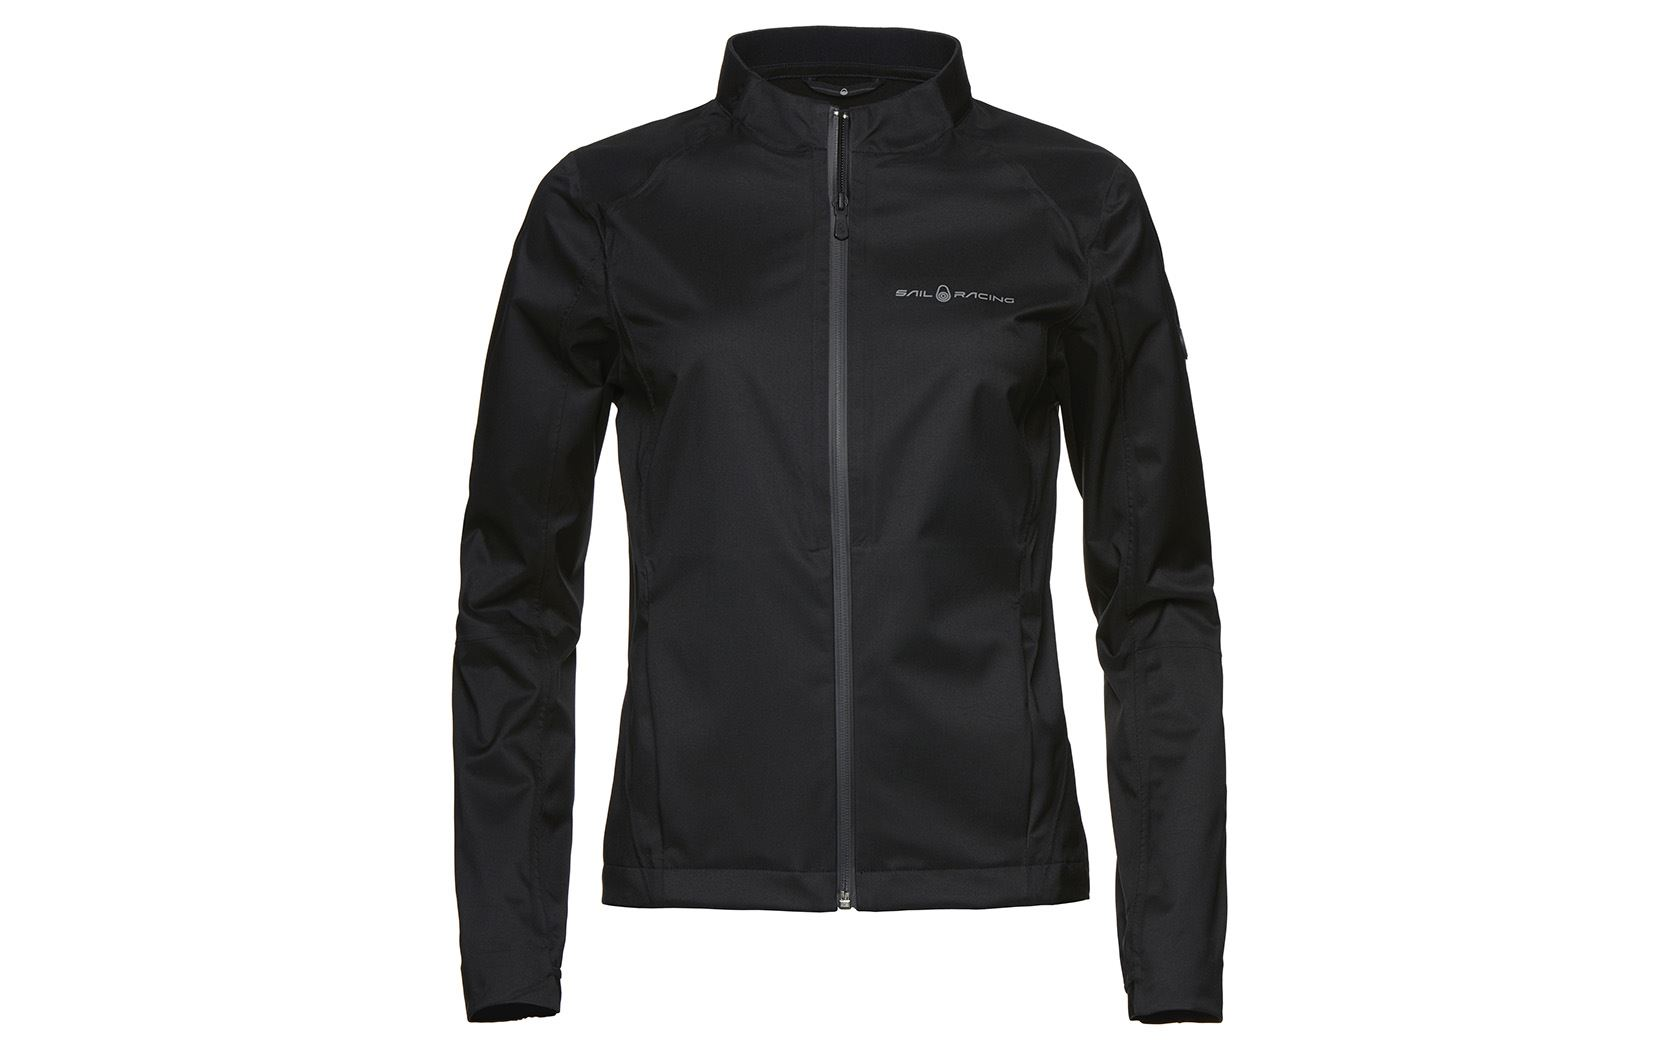 W GALE TECHNICAL JACKET